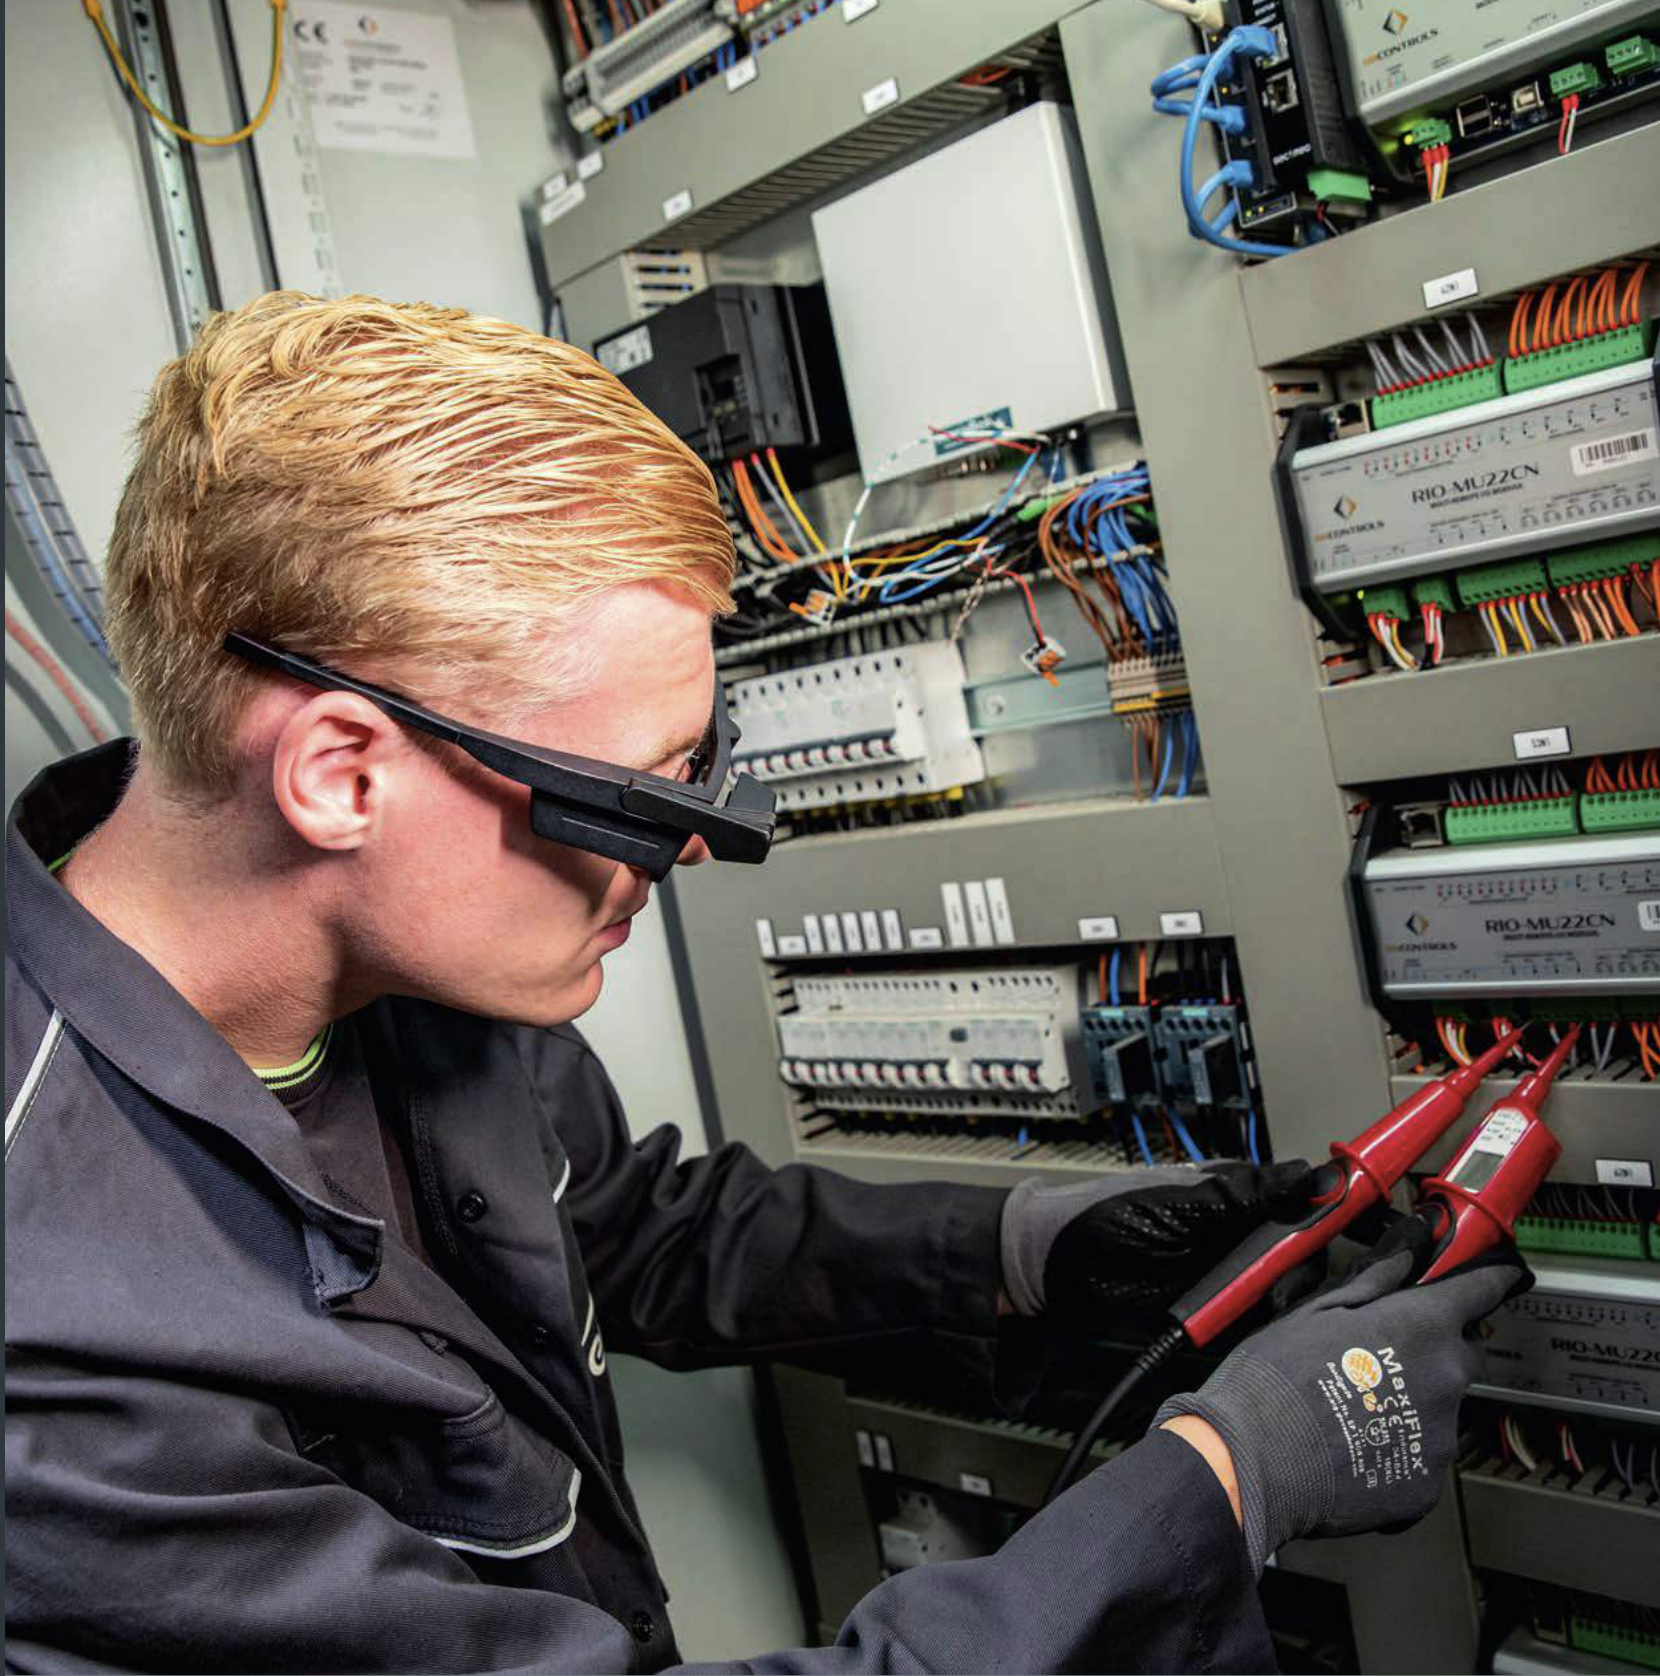 Operator working with both hands free thanks to smart glasses